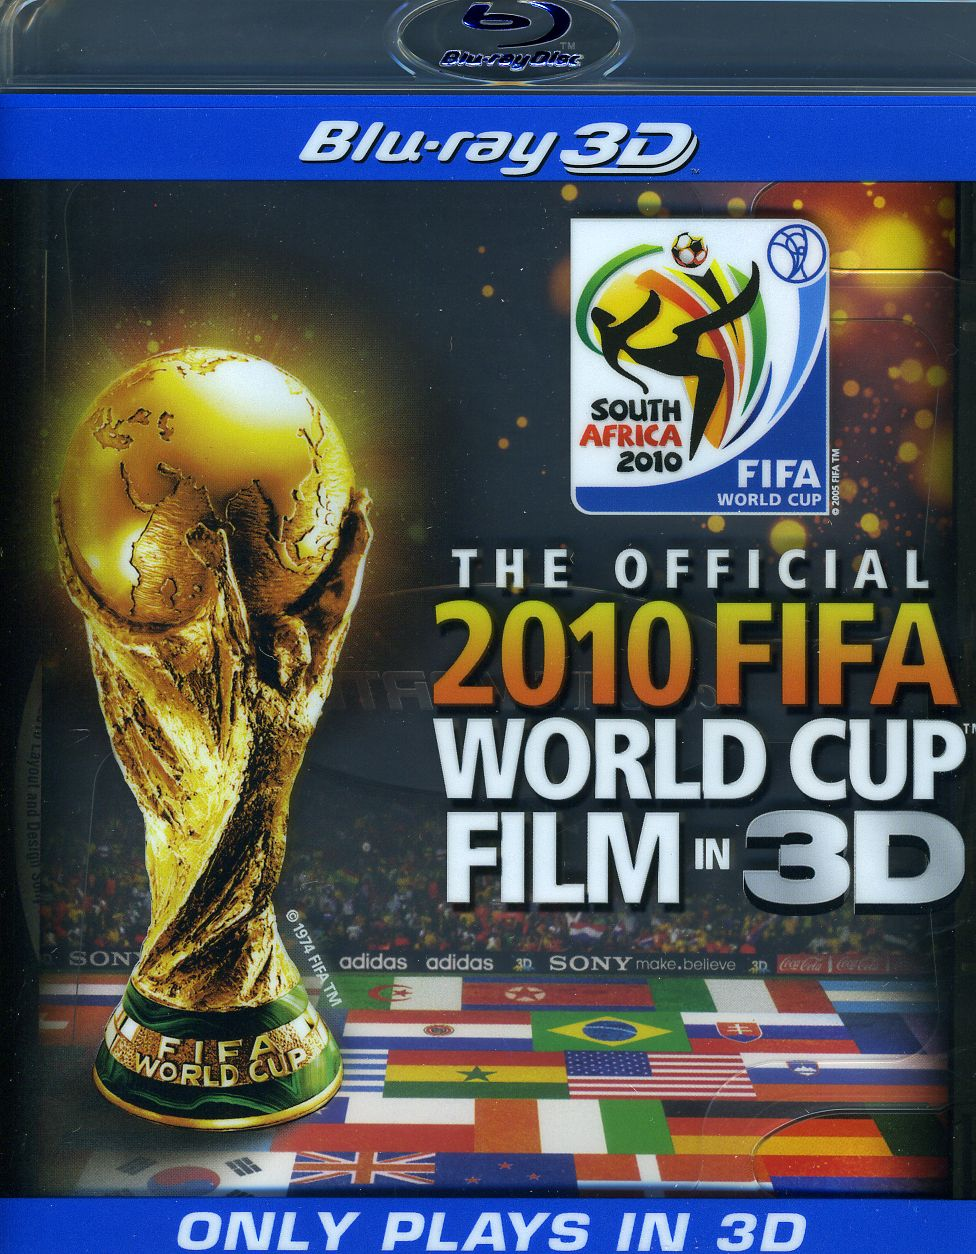 The Official 2010 Fifa World Cup Film in 3D (Blu-ray Disc)